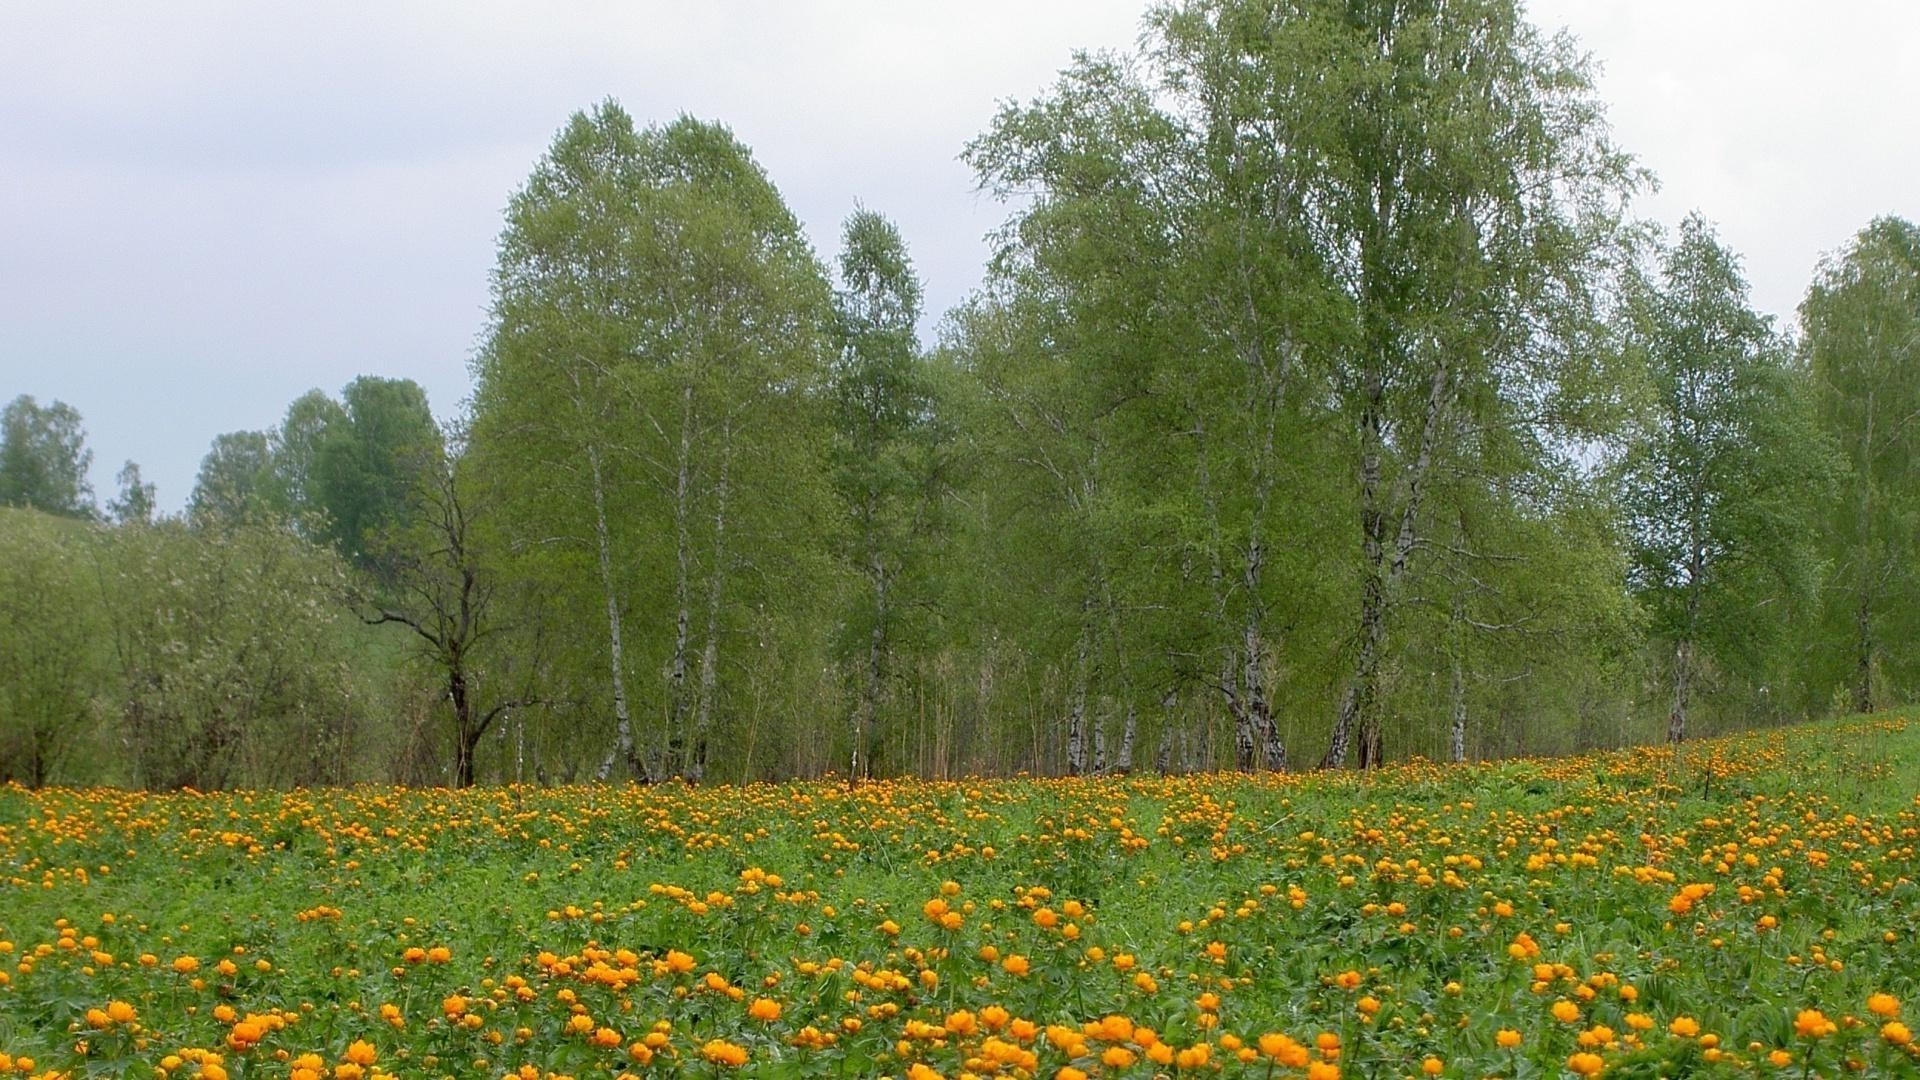 Field orange flowers of the forest